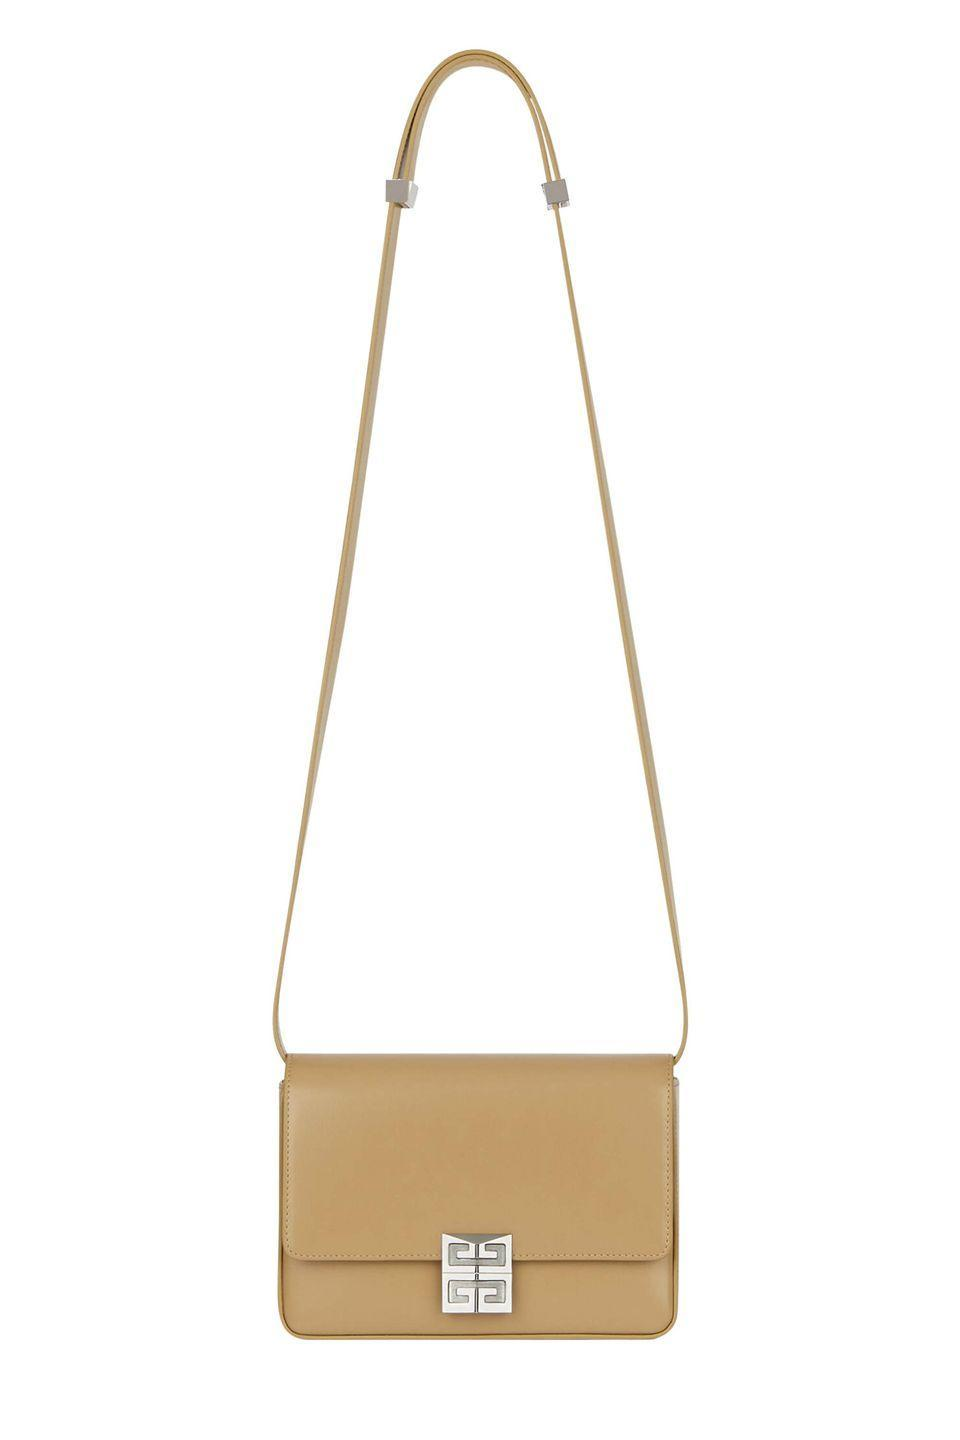 """<p><a class=""""link rapid-noclick-resp"""" href=""""https://www.givenchy.com/gb/en/medium-4g-bag-in-box-leather/BB50HCB15S-277.html#start=1"""" rel=""""nofollow noopener"""" target=""""_blank"""" data-ylk=""""slk:SHOP NOW"""">SHOP NOW</a></p><p>Keep it sleek, simple and undeniably elegant with Givenchy's 4G bag, which has a removable and adjustable shoulder strap, giving you multiple ways to wear it.</p><p>Leather bag, £1,450, <a href=""""https://www.givenchy.com/gb/en/medium-4g-bag-in-box-leather/BB50HCB15S-277.html#start=1"""" rel=""""nofollow noopener"""" target=""""_blank"""" data-ylk=""""slk:Givenchy"""" class=""""link rapid-noclick-resp"""">Givenchy</a></p>"""